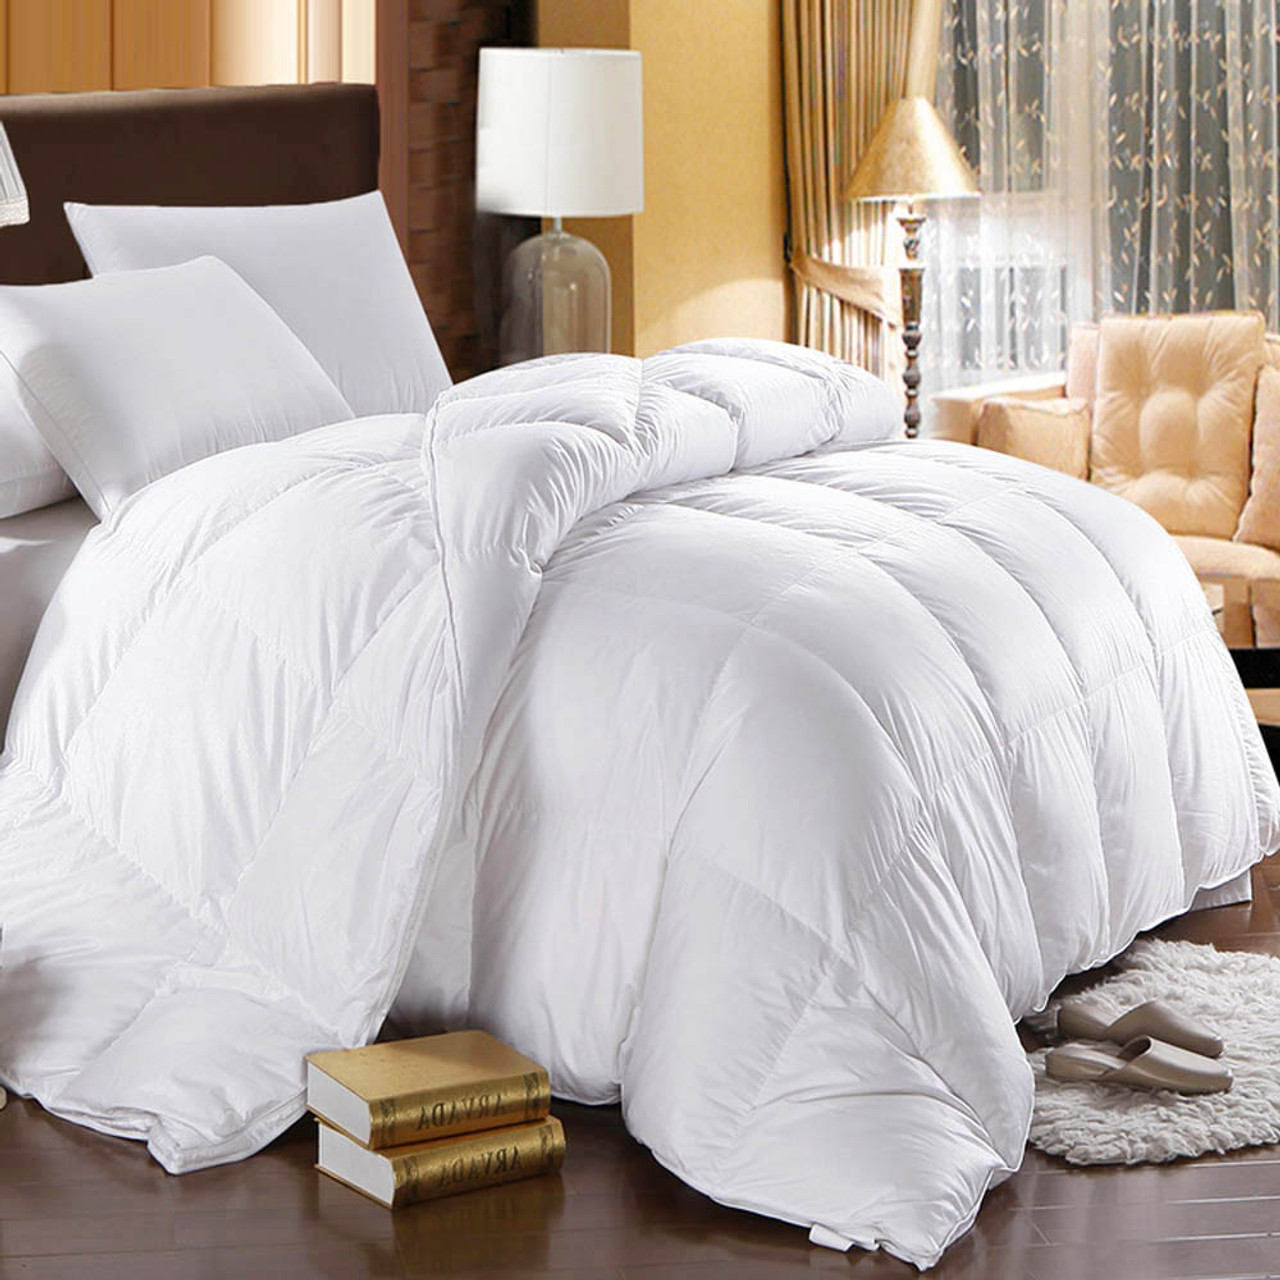 sets pintuck discount canada bedspread endearing tree for rose king styles invigorating set bahama furniture per bed waverly different decor ah tommy bedding size dimensions comforter oversized and luxury ensembles quilts comforters home